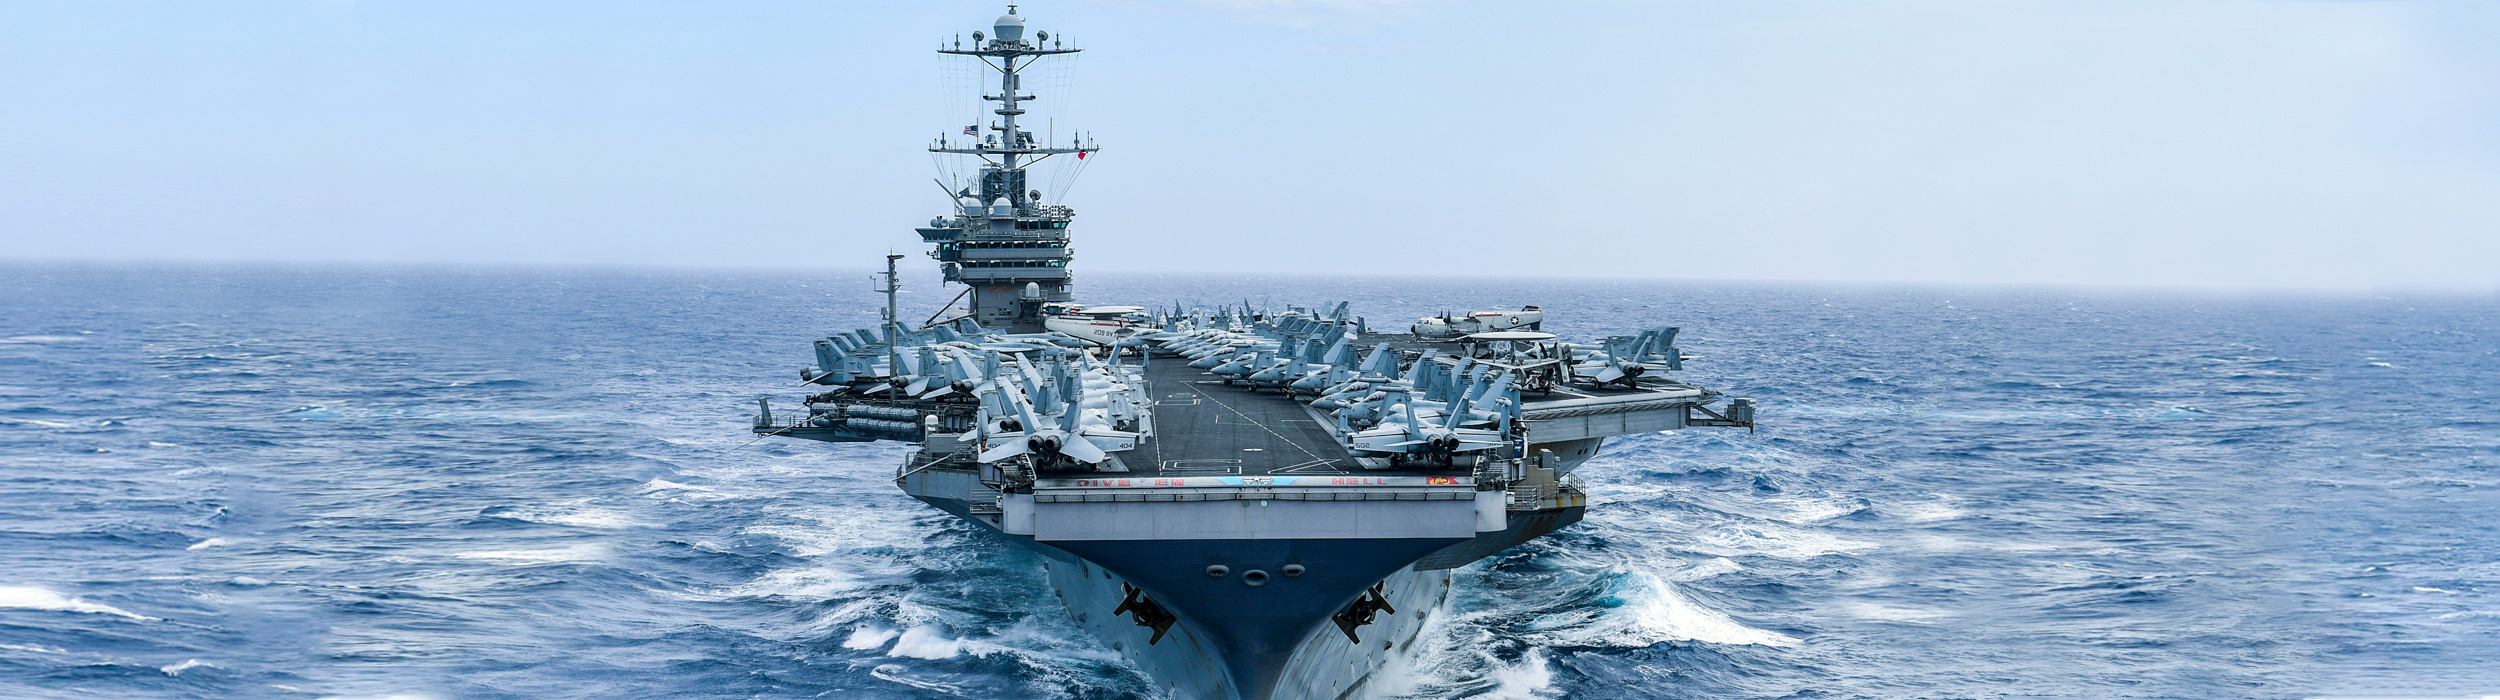 Naval Image - Aircraft carrier